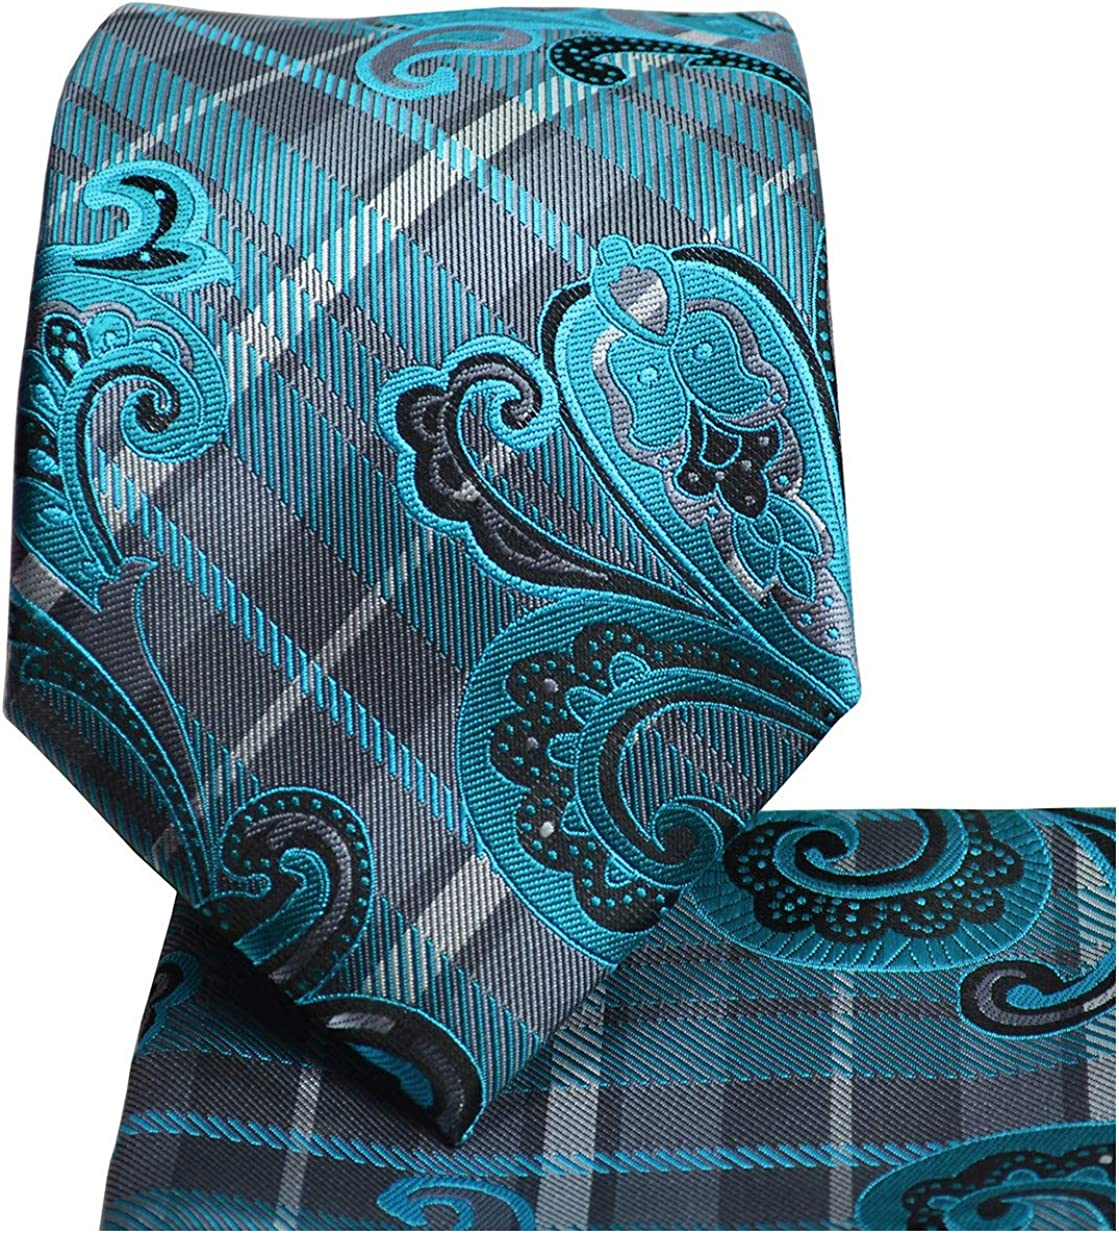 Paisley Tie and Pocket Square Set by Paul Malone